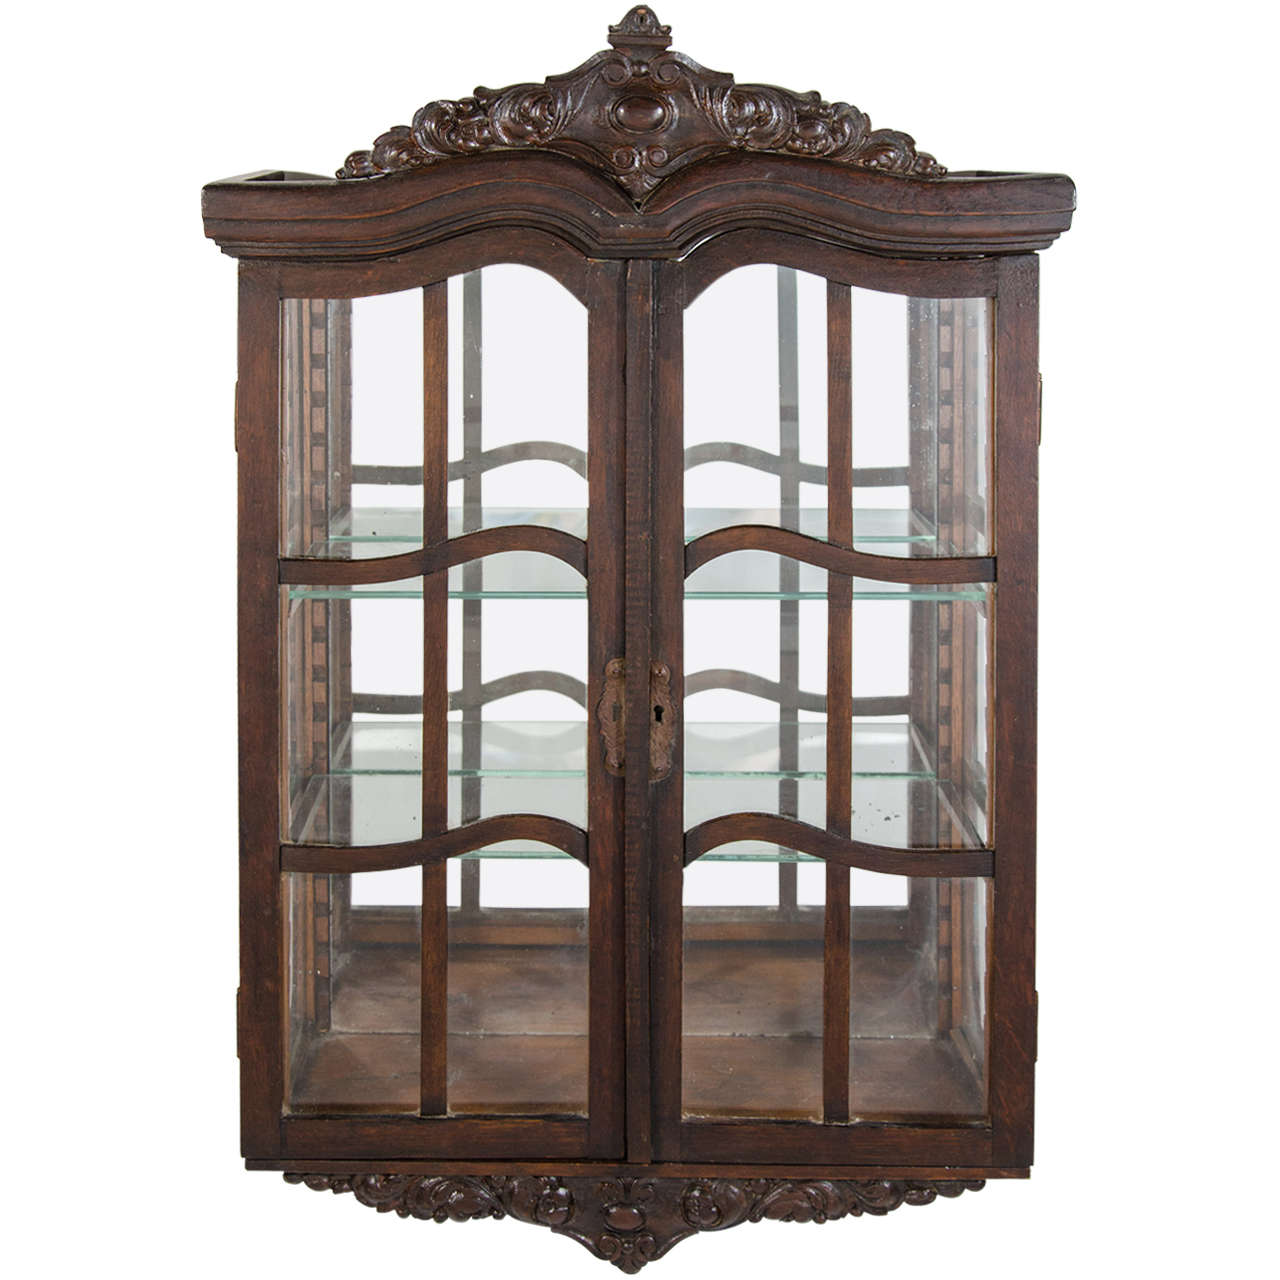 Fullsize Of Wall Curio Cabinet